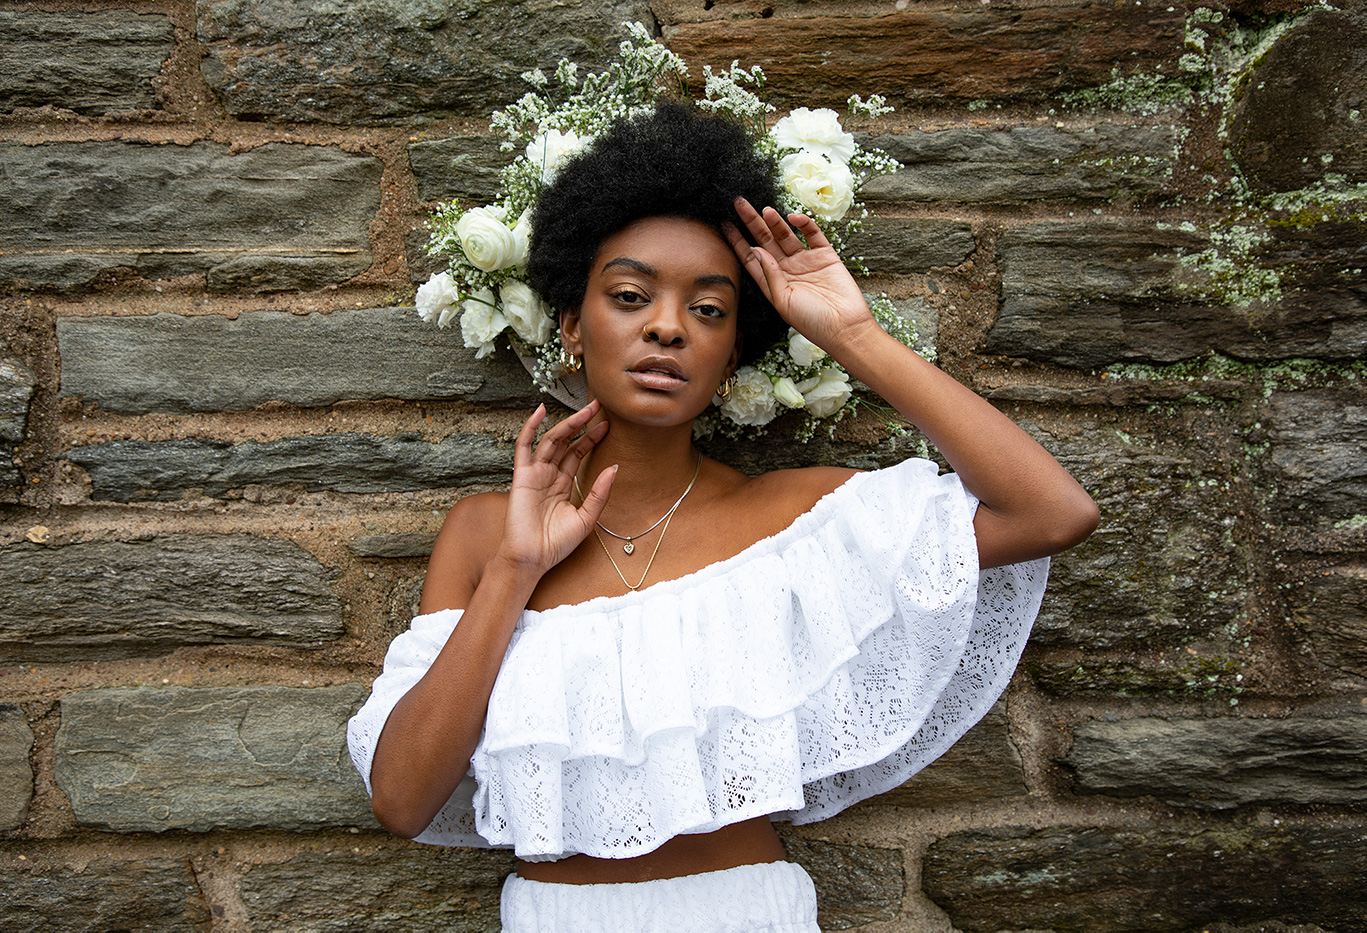 Looking to support small shops, or Black- or woman-owned businesses for Memorial Day? We got 'em (some sustainable, too). Ten drool-worthy sales, inside.